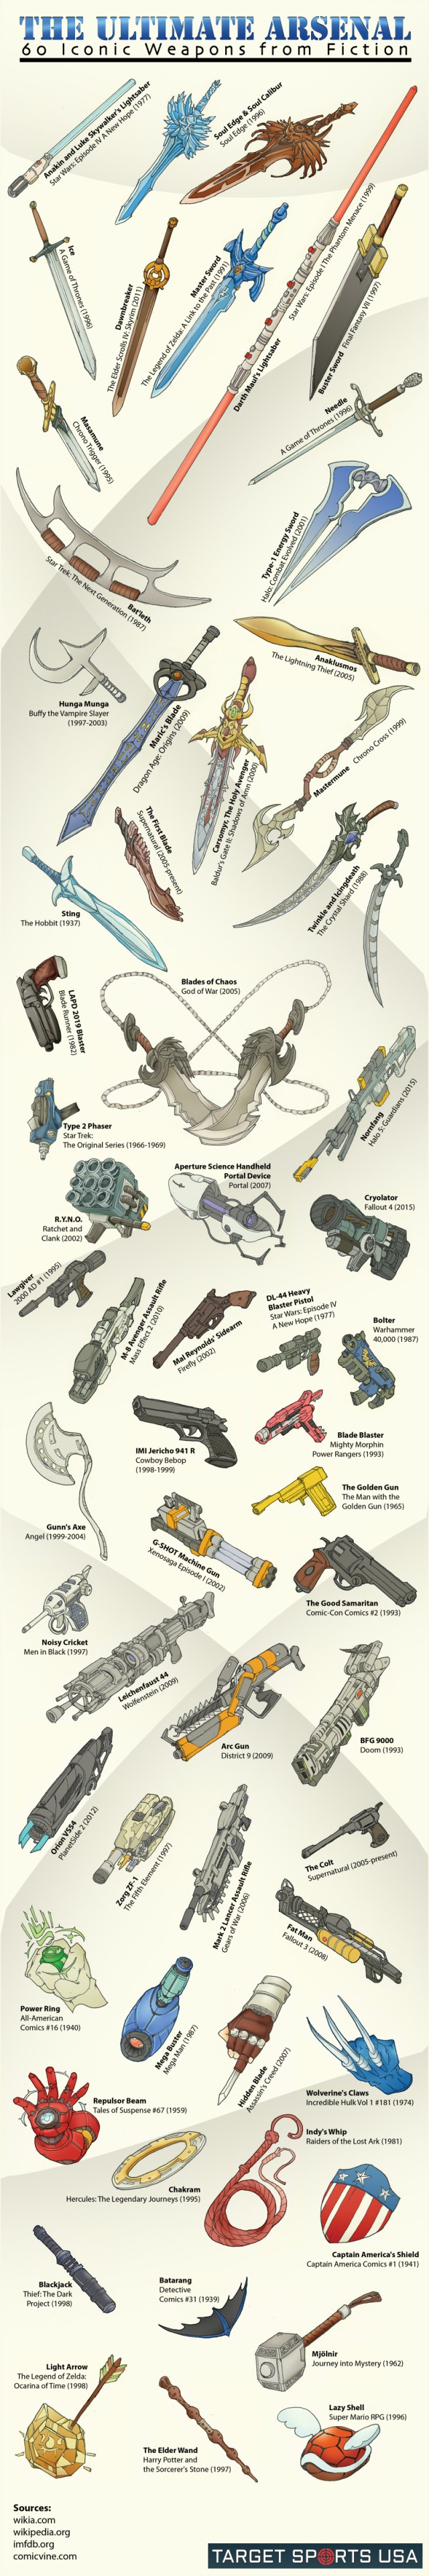 60 Iconic Weapons from Fiction